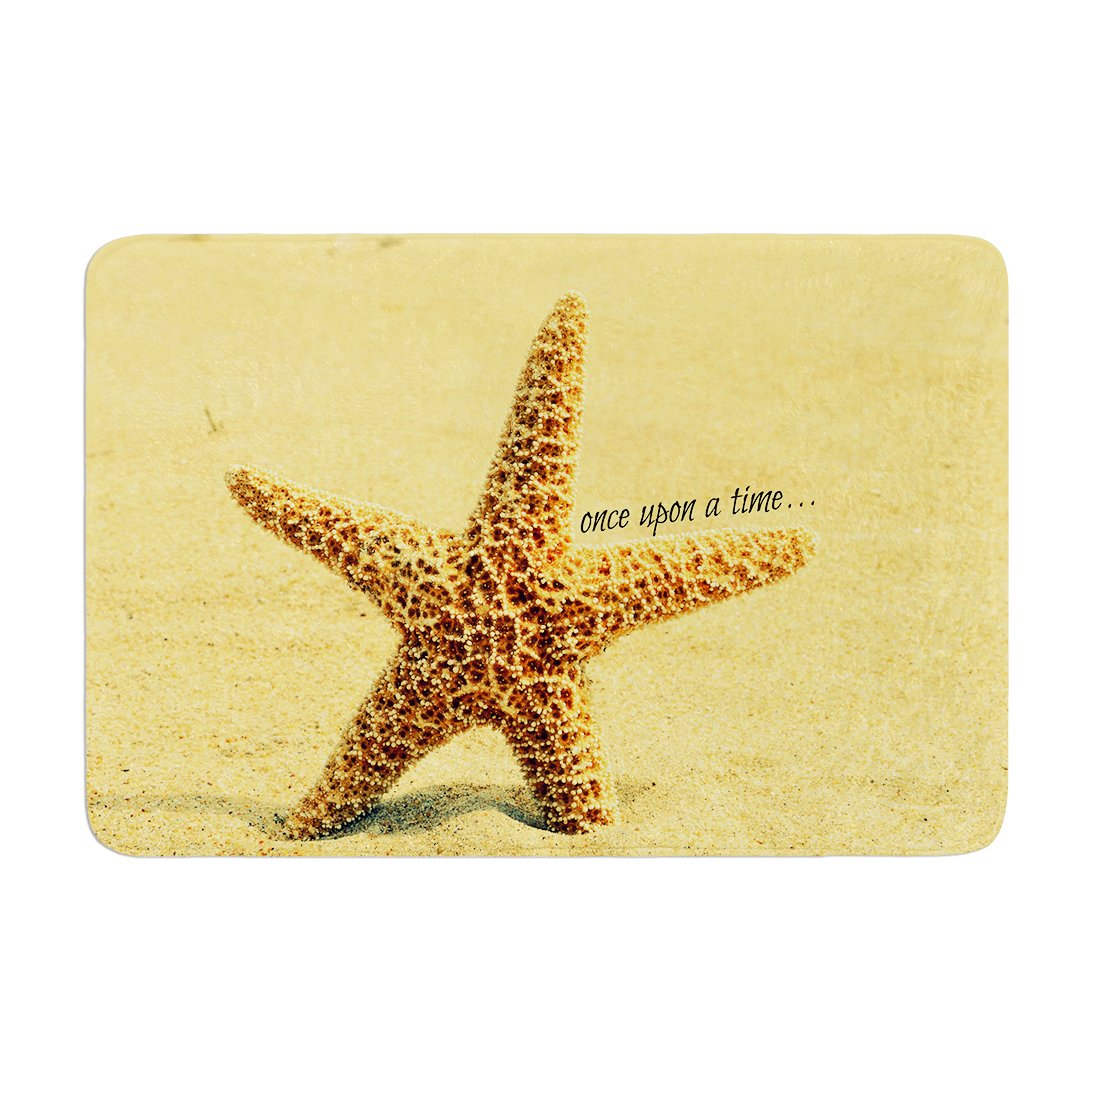 Kess InHouse Robin Dickinson Once Upon a Time Starfish Memory Foam Bath Mat 17 by 24